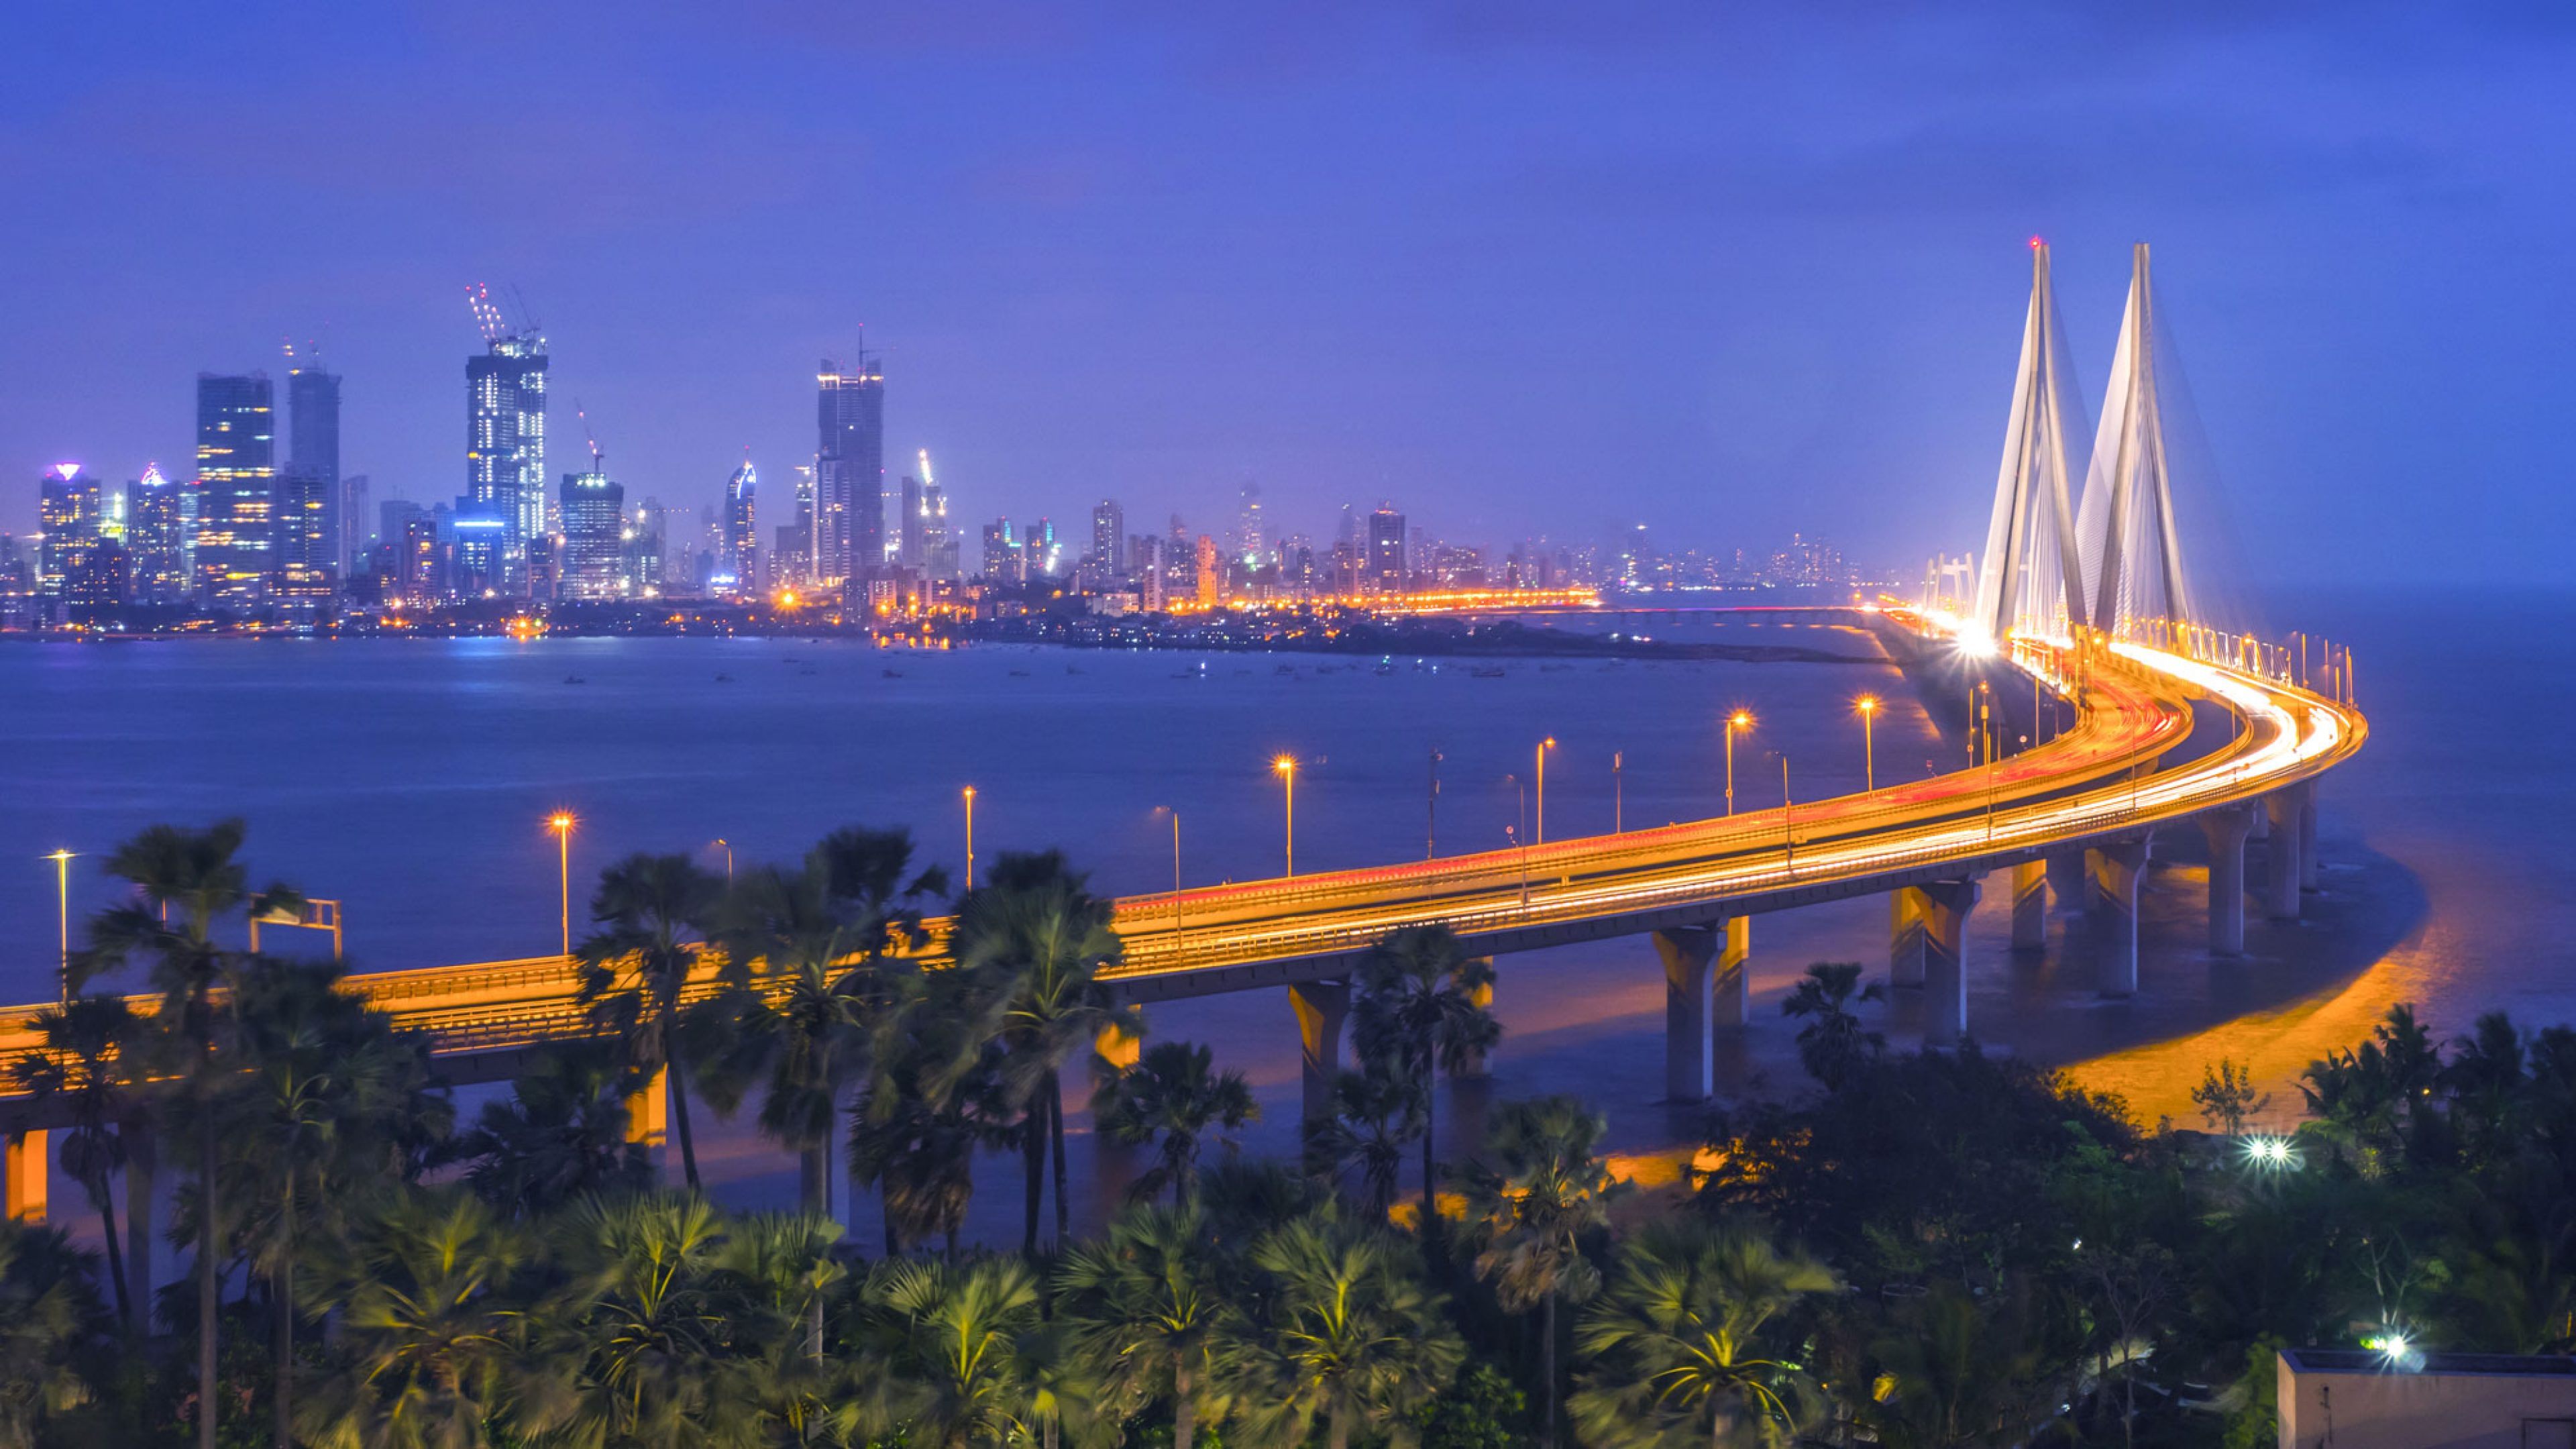 Mumbai at night